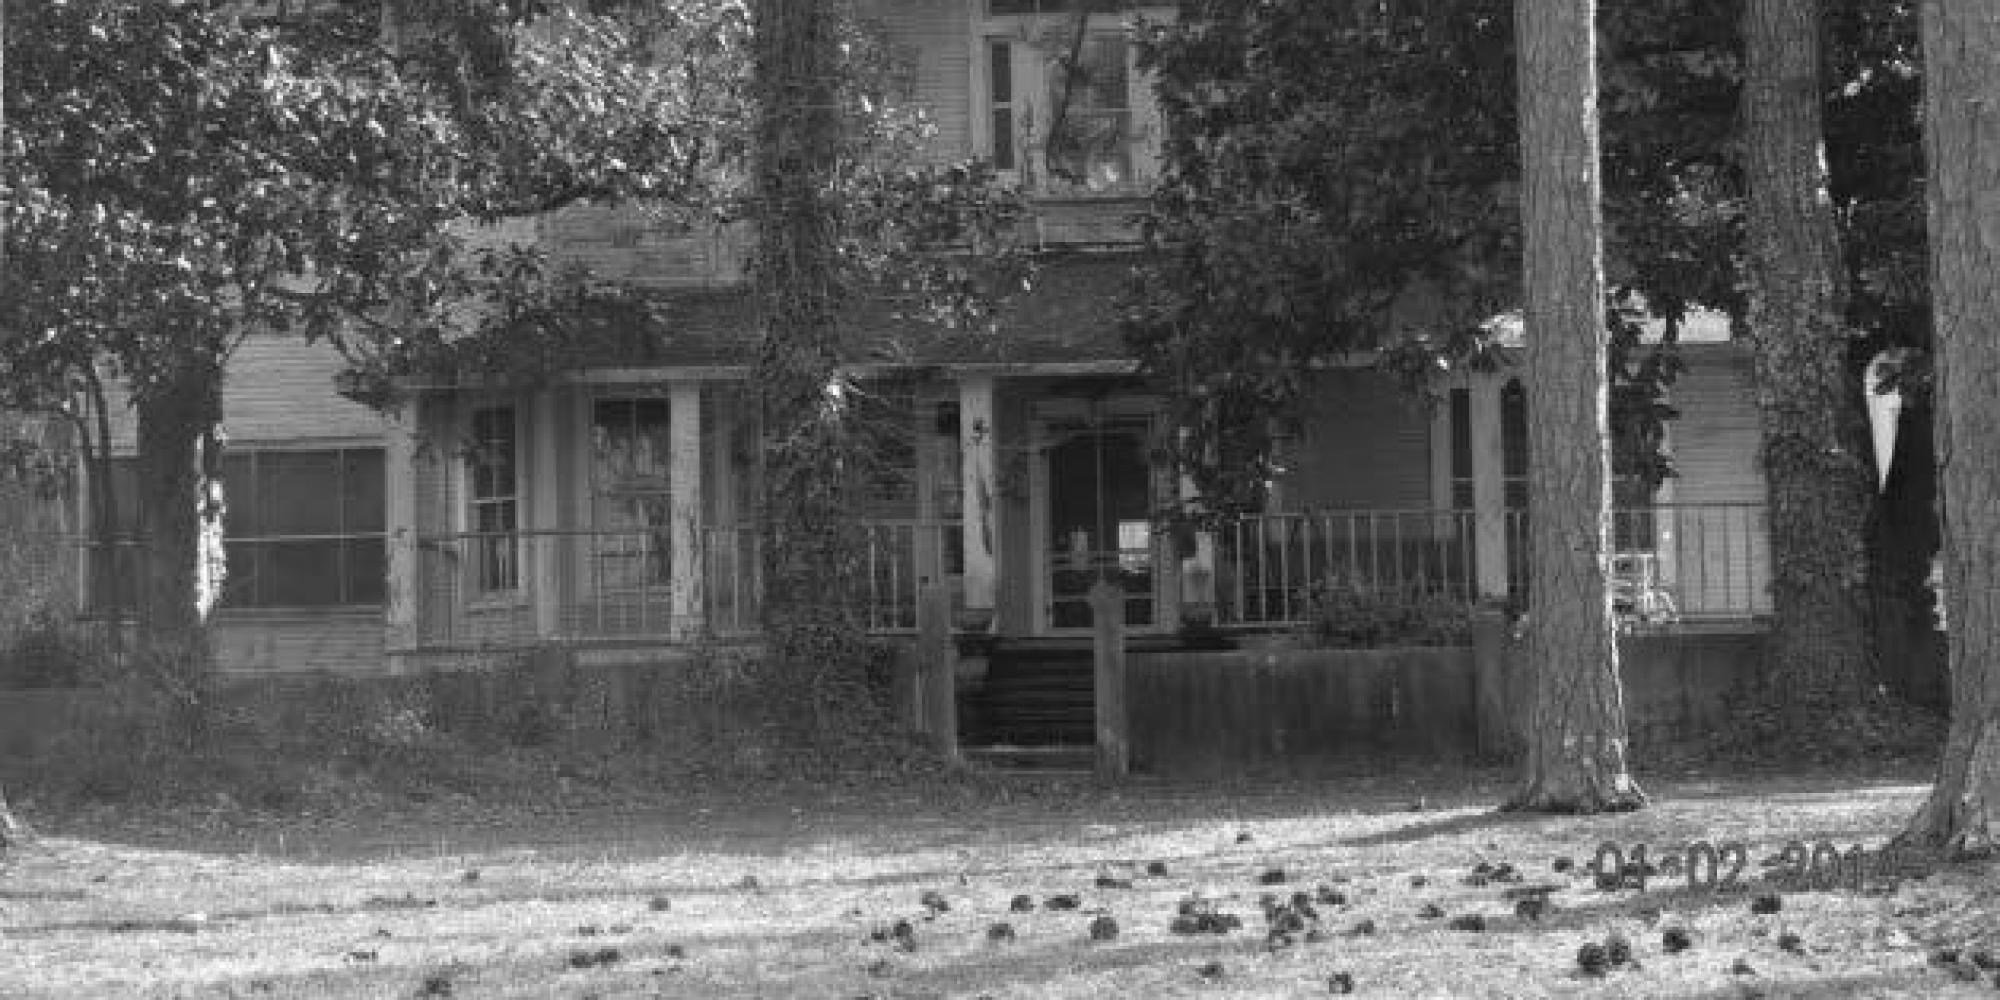 A Look Inside The Town That Inspired To Kill A Mockingbird